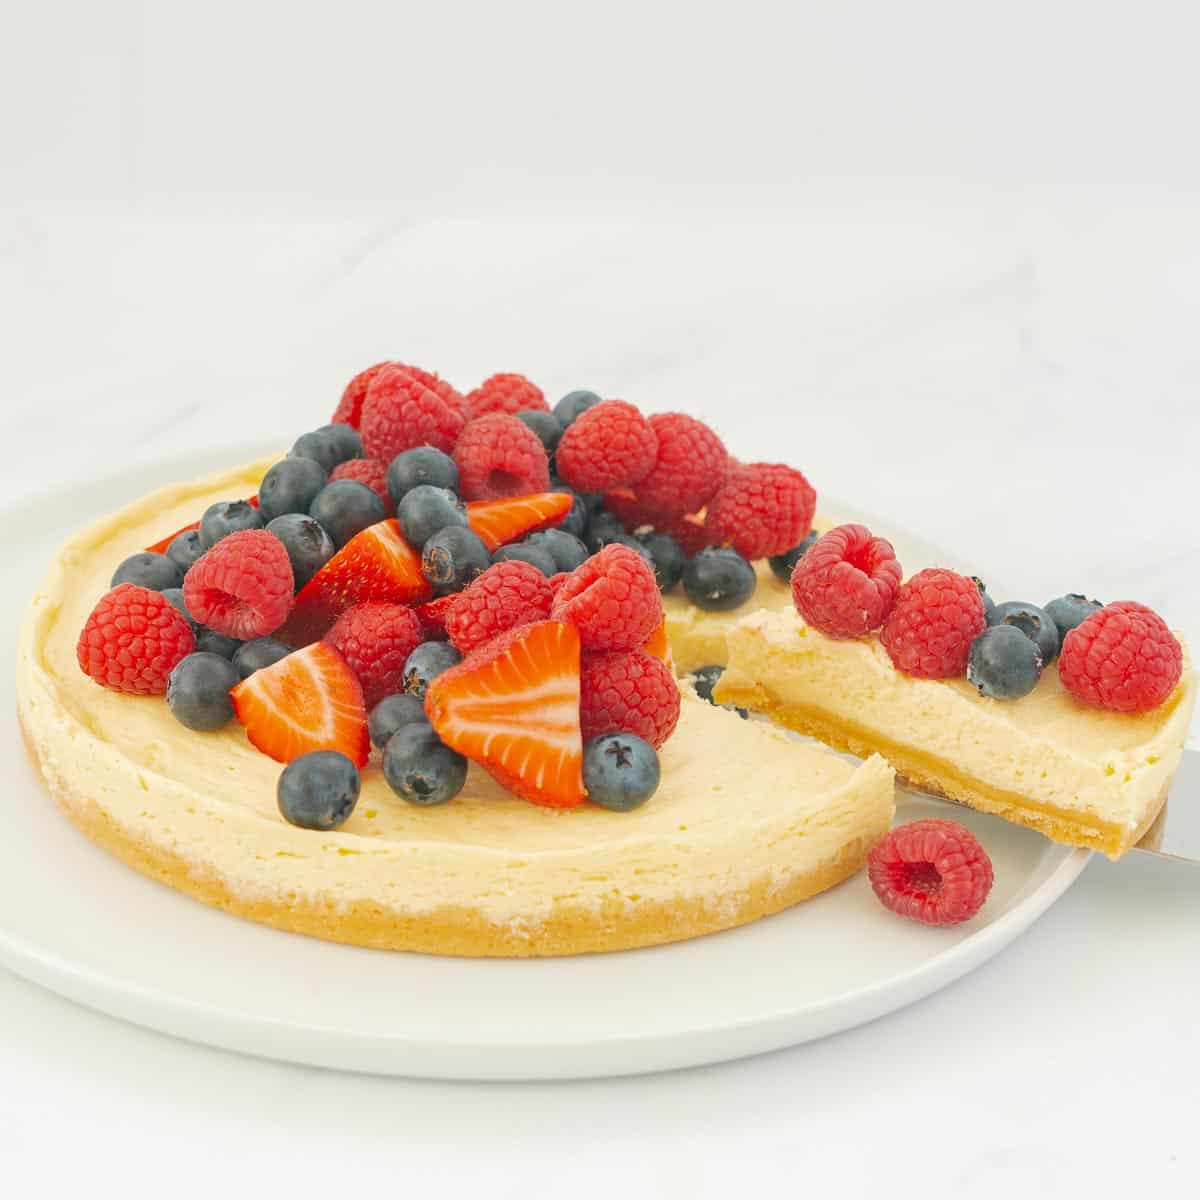 A round cheesecake with biscuit base topped with berries on a large white serving platter, a cake slice is removing one piece.